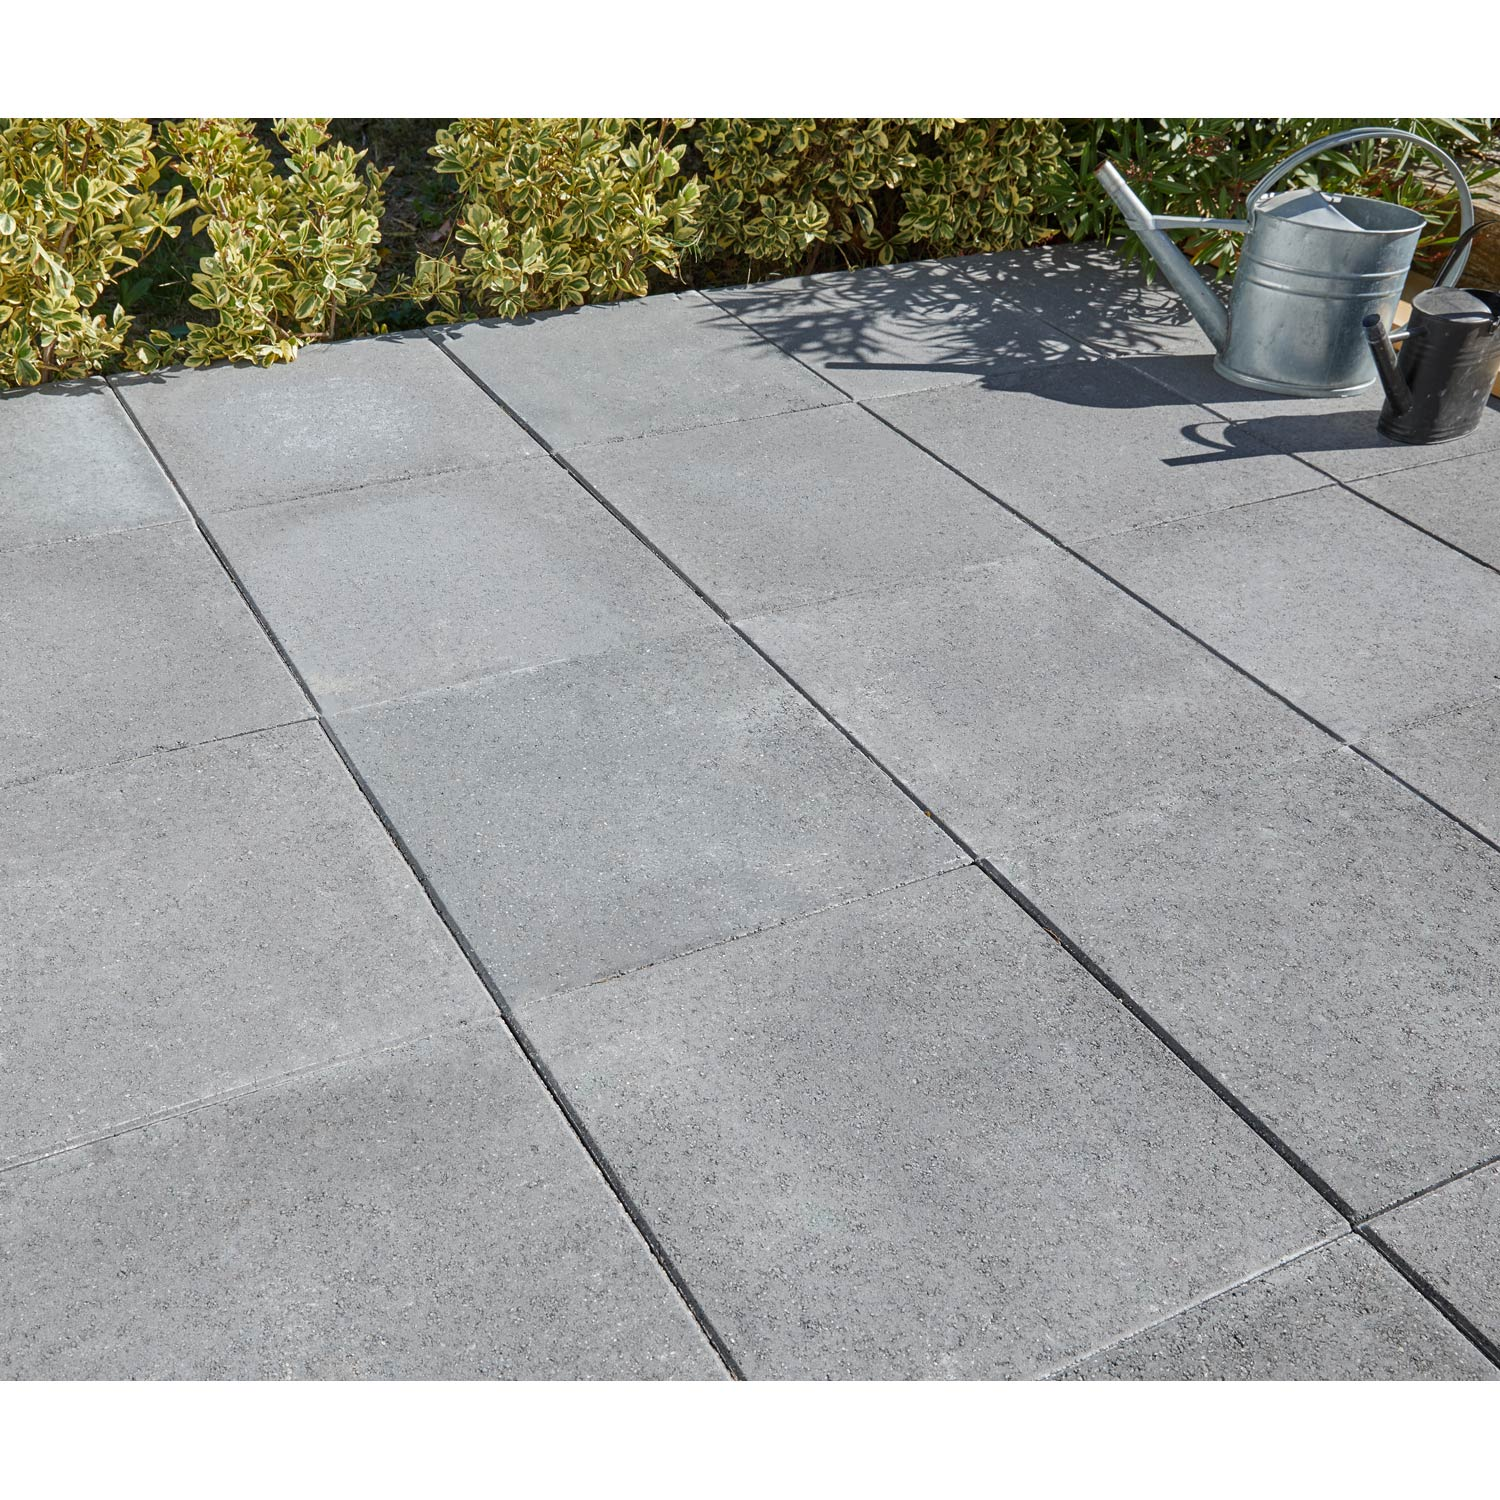 Dalle b ton proven ale gris fonc x cm x for Dalle beton finition quartz